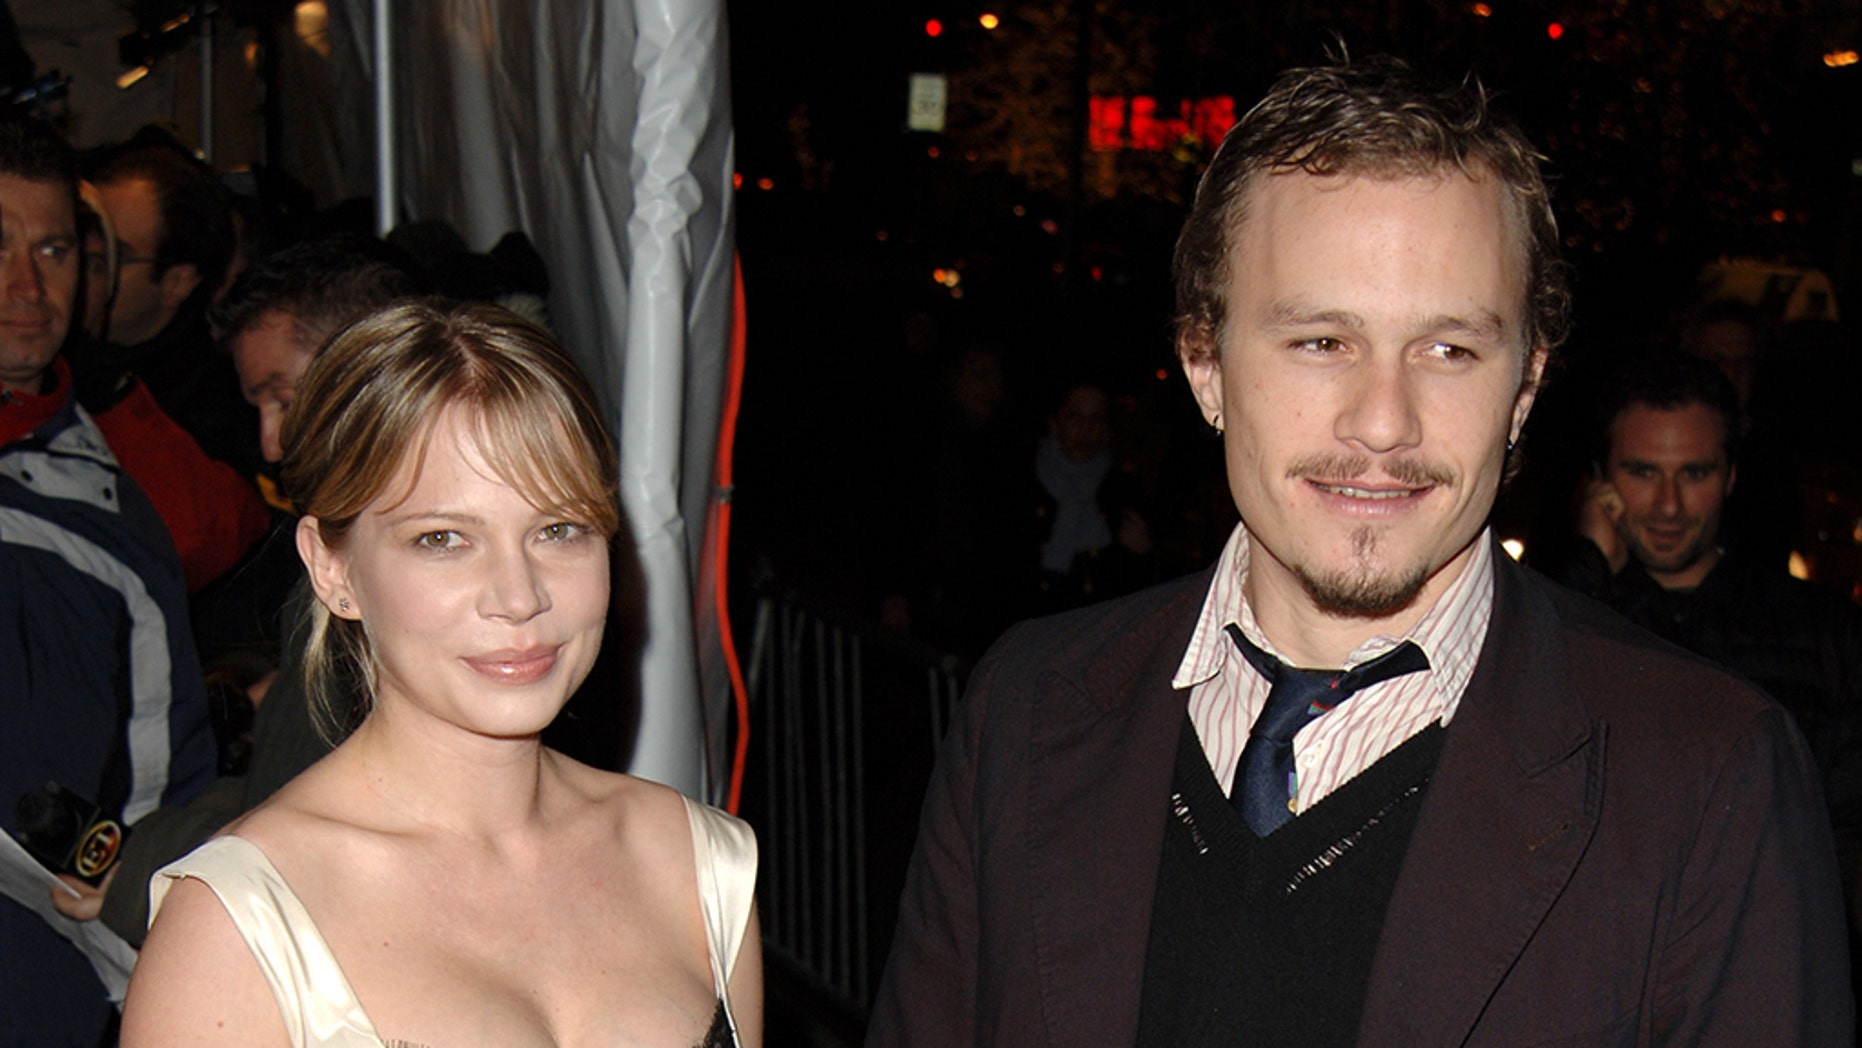 """Heath Ledger and Michelle Williams arrive at the """"Brokeback Mountain"""" premiere held at the Loews Lincoln Square, New York City BRIAN ZAK. (Photo by Brian ZAK/Gamma-Rapho via Getty Images)"""